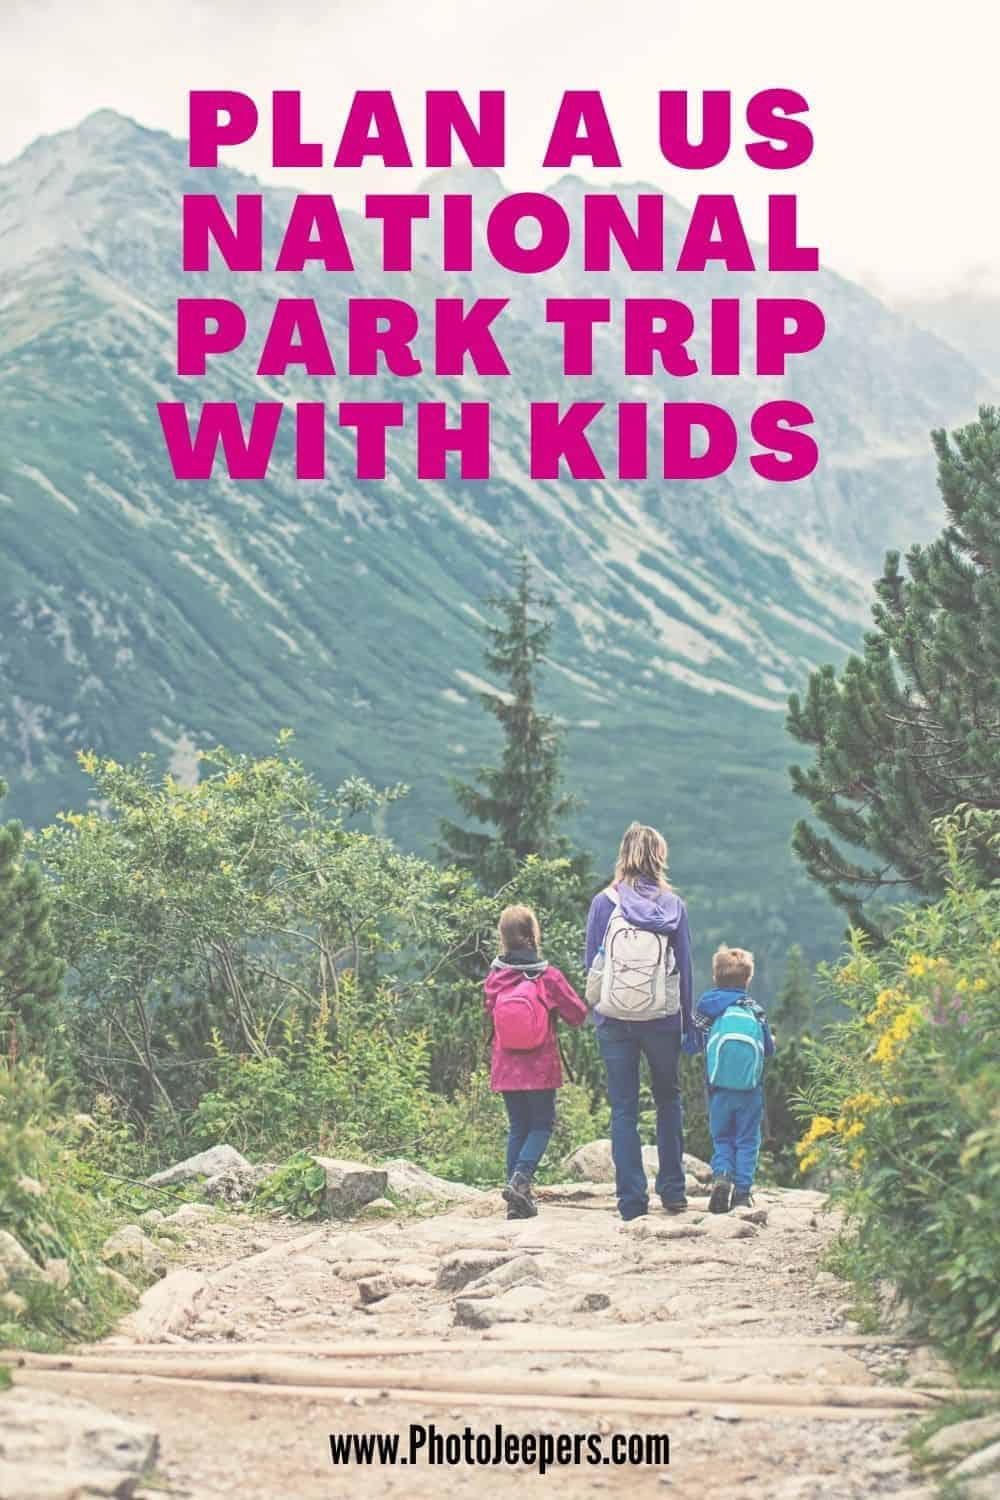 Plan a US National Park trip with kids